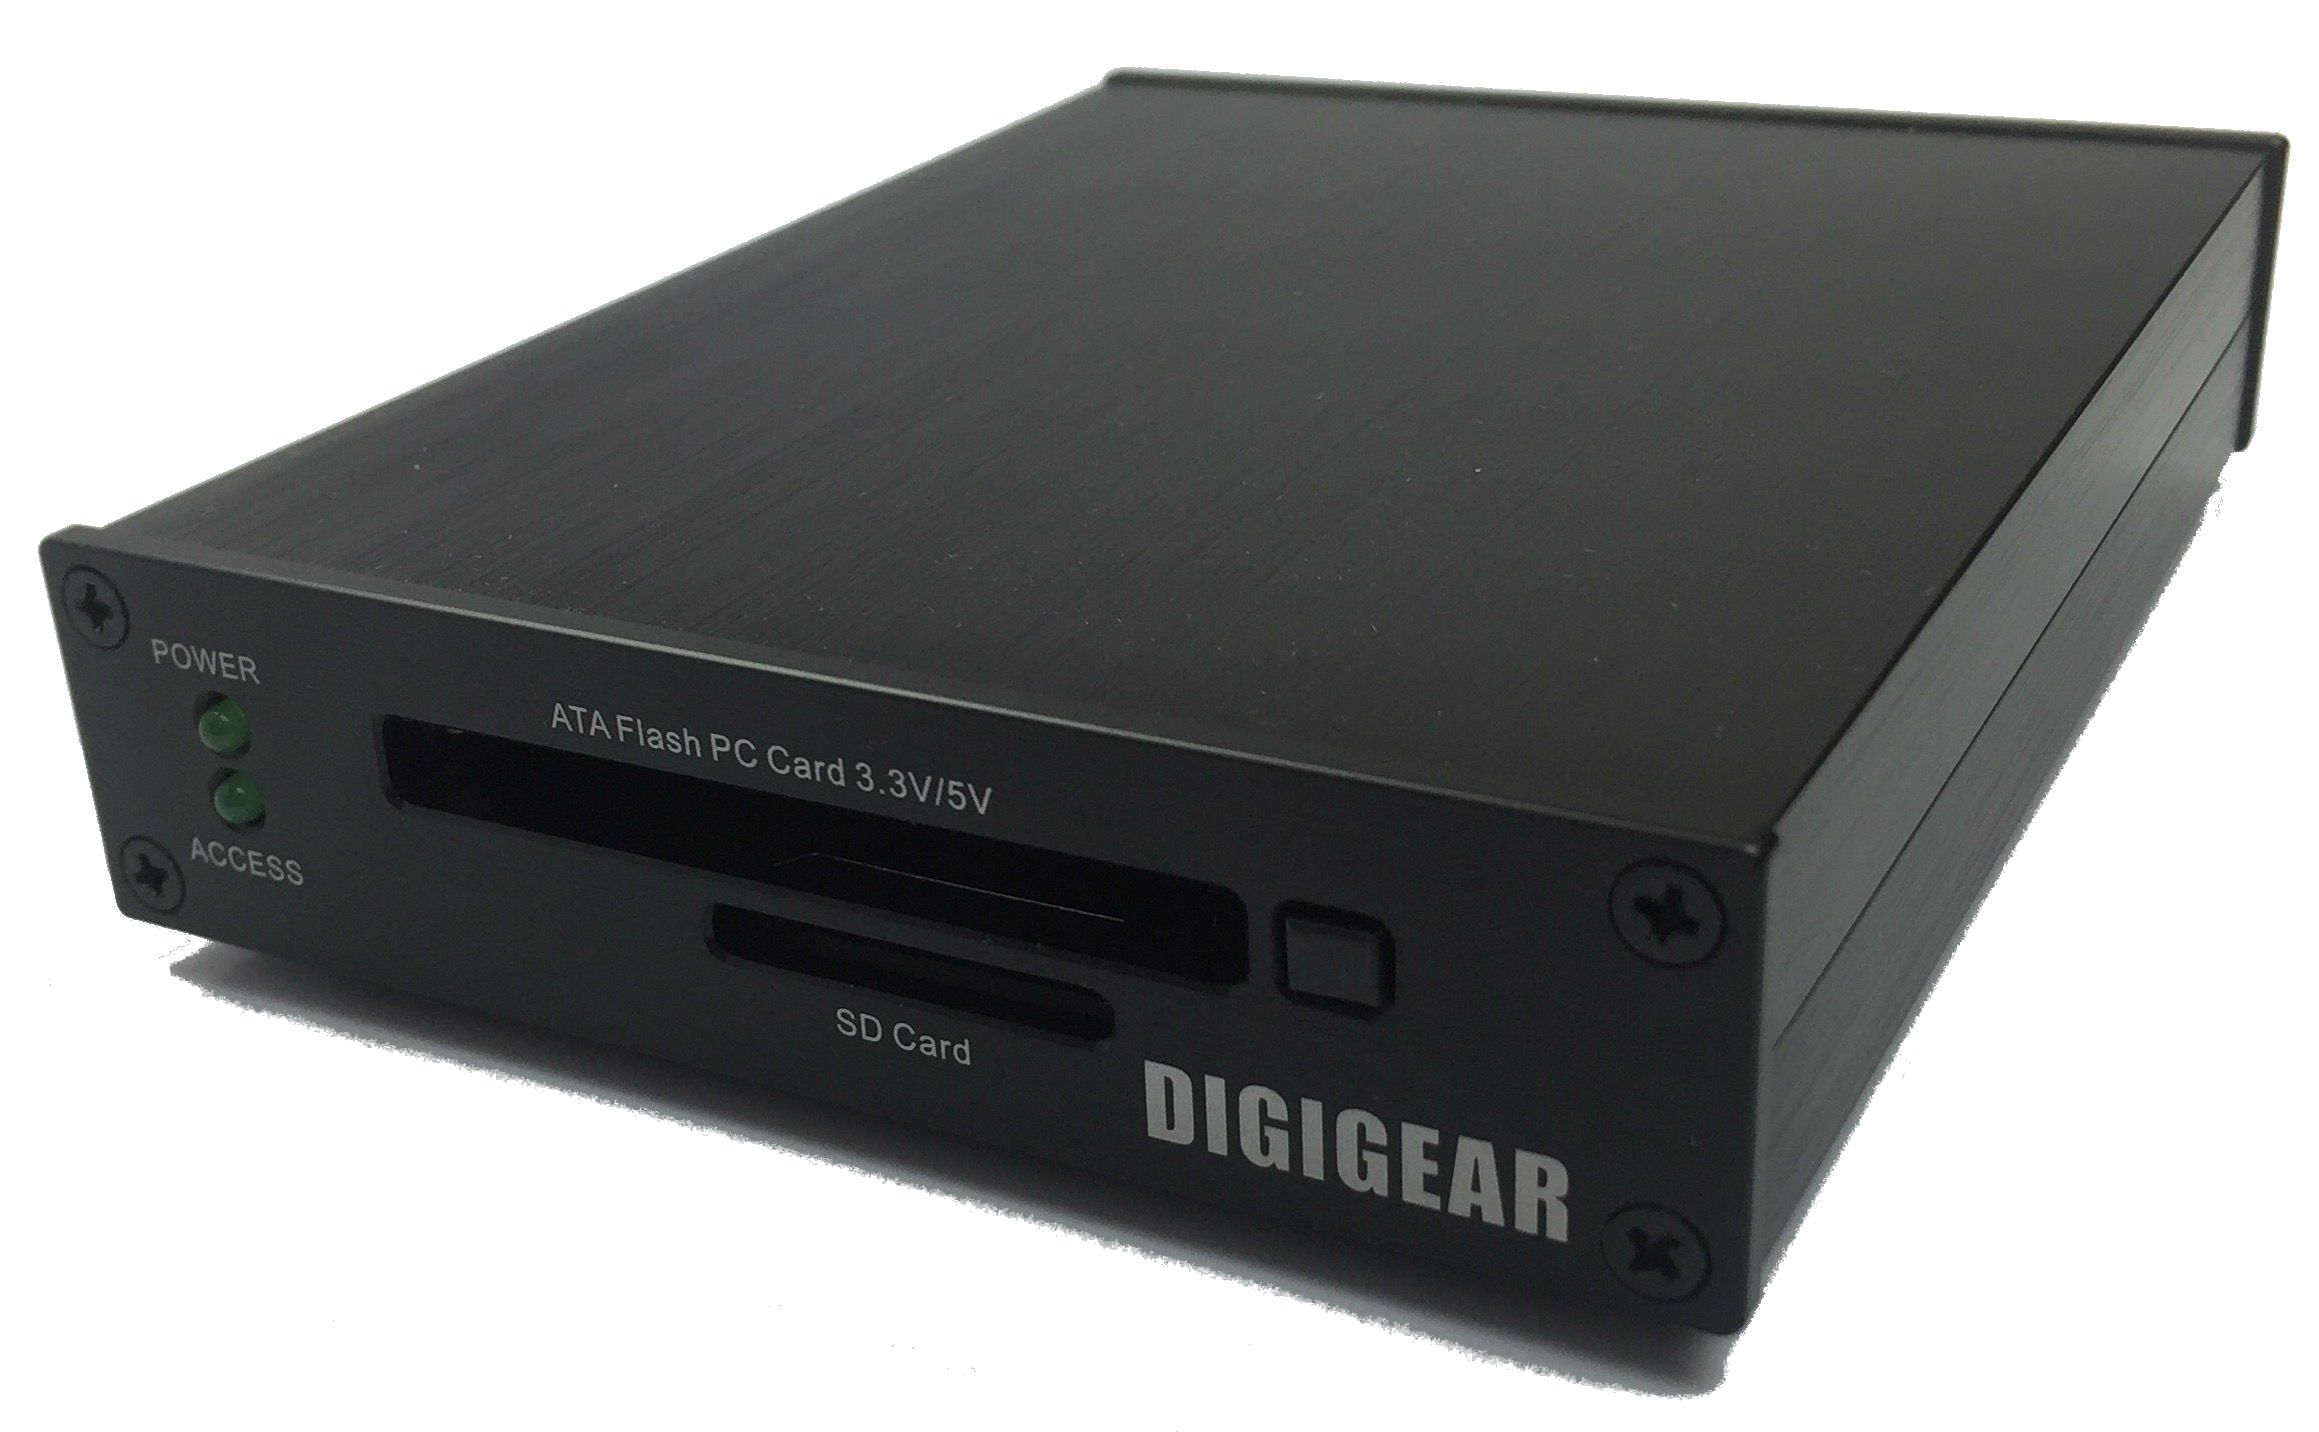 DIGIGEAR ATA Flash PCMCIA PC Card & SD/SDHC/SDXC USB 3.0 Industrial Grade Reader by Digigear (Image #1)